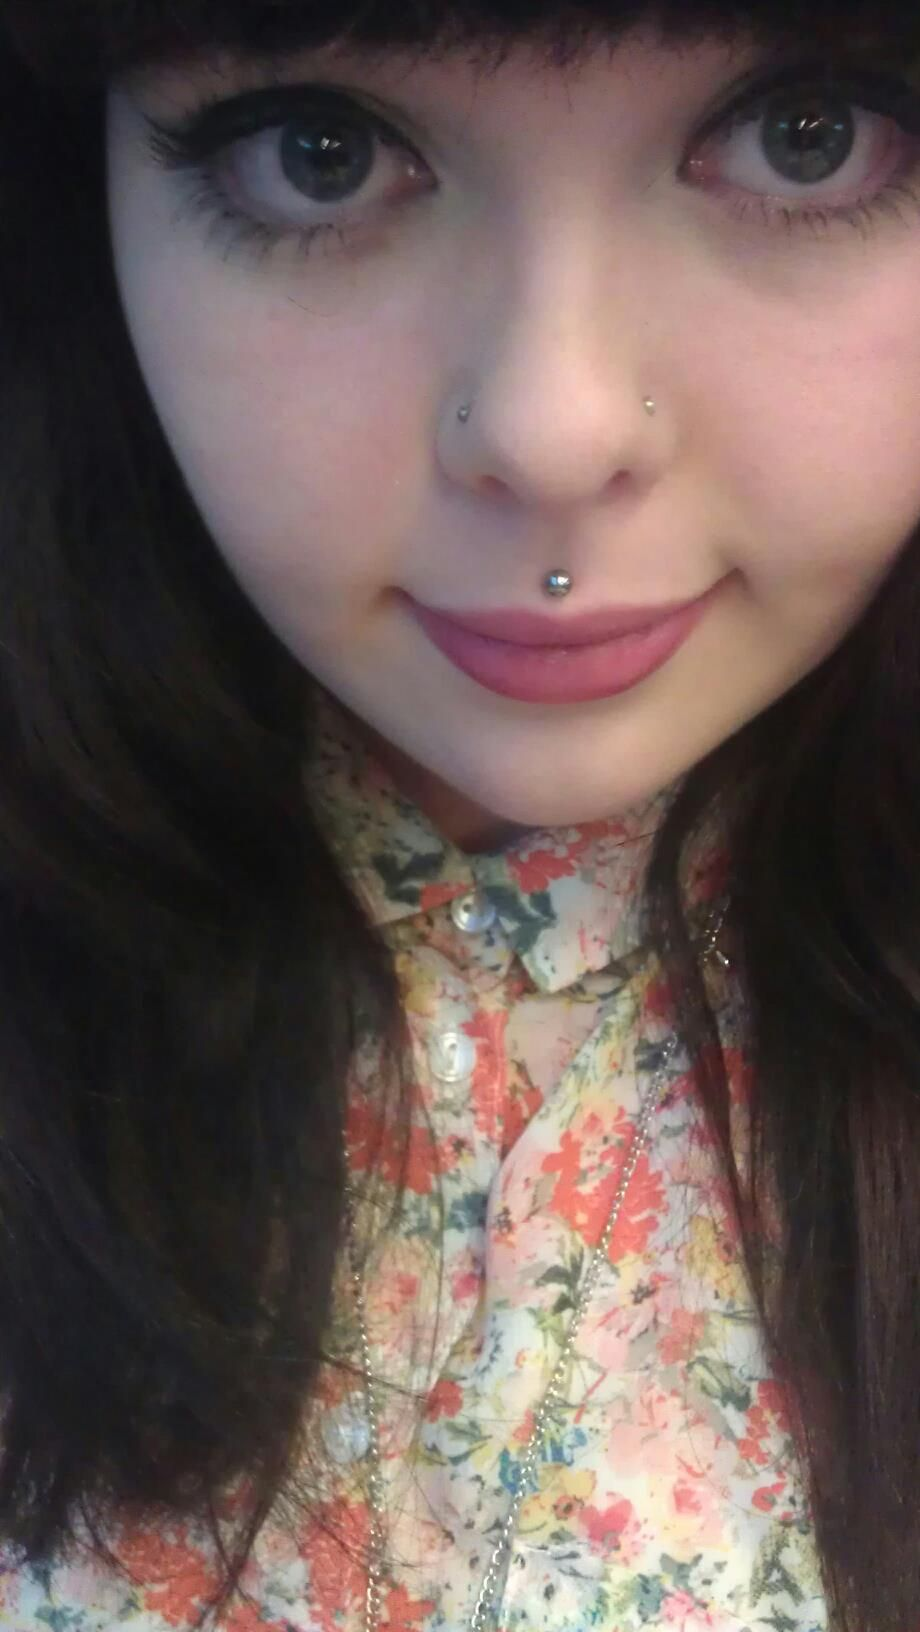 Nose pin without piercing  double nose piercing and Medusa piercing done between the age of